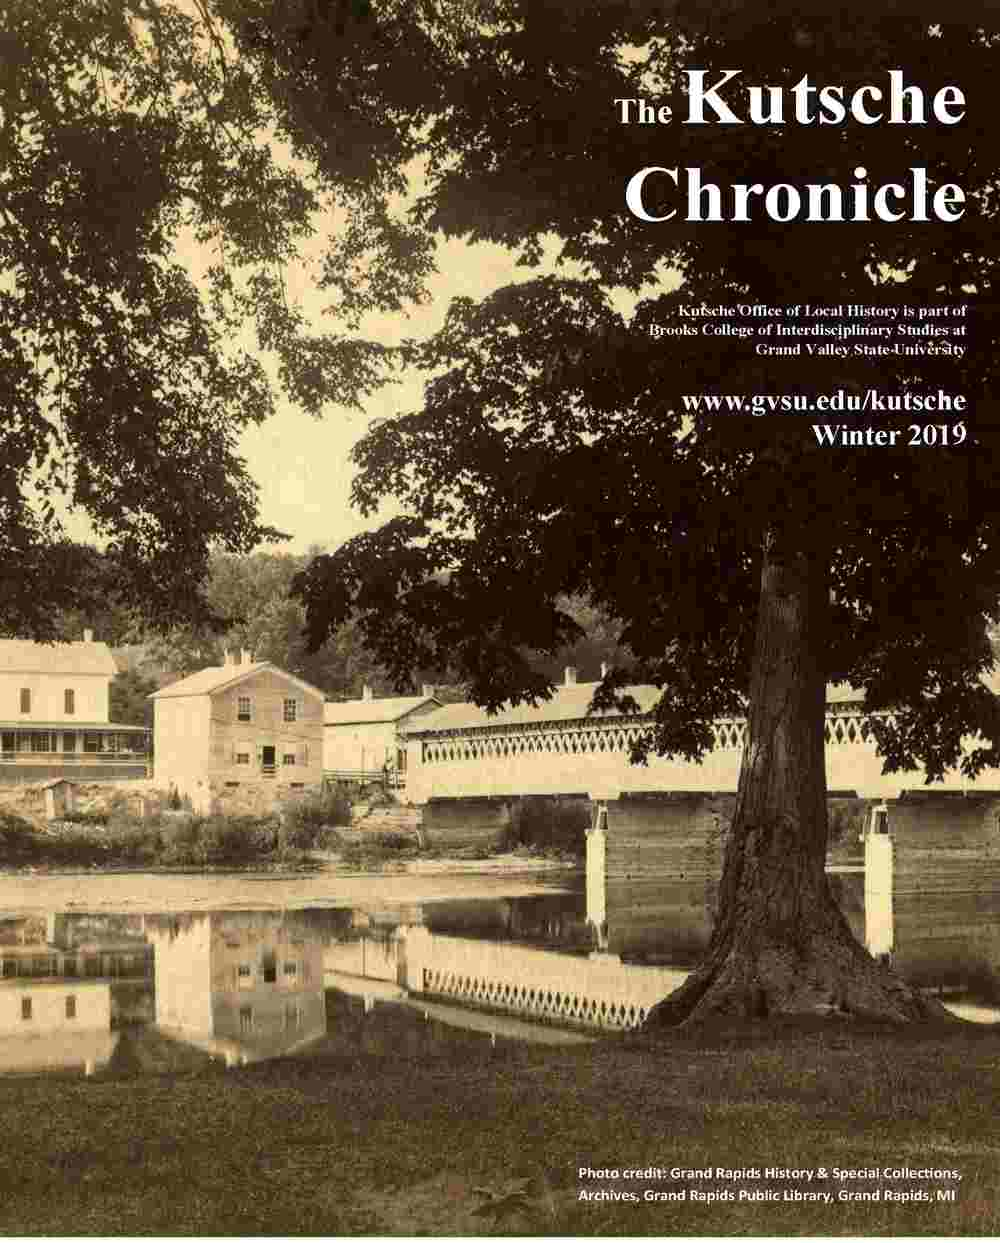 Winter 2019 Kutsche Chronicle Now available online